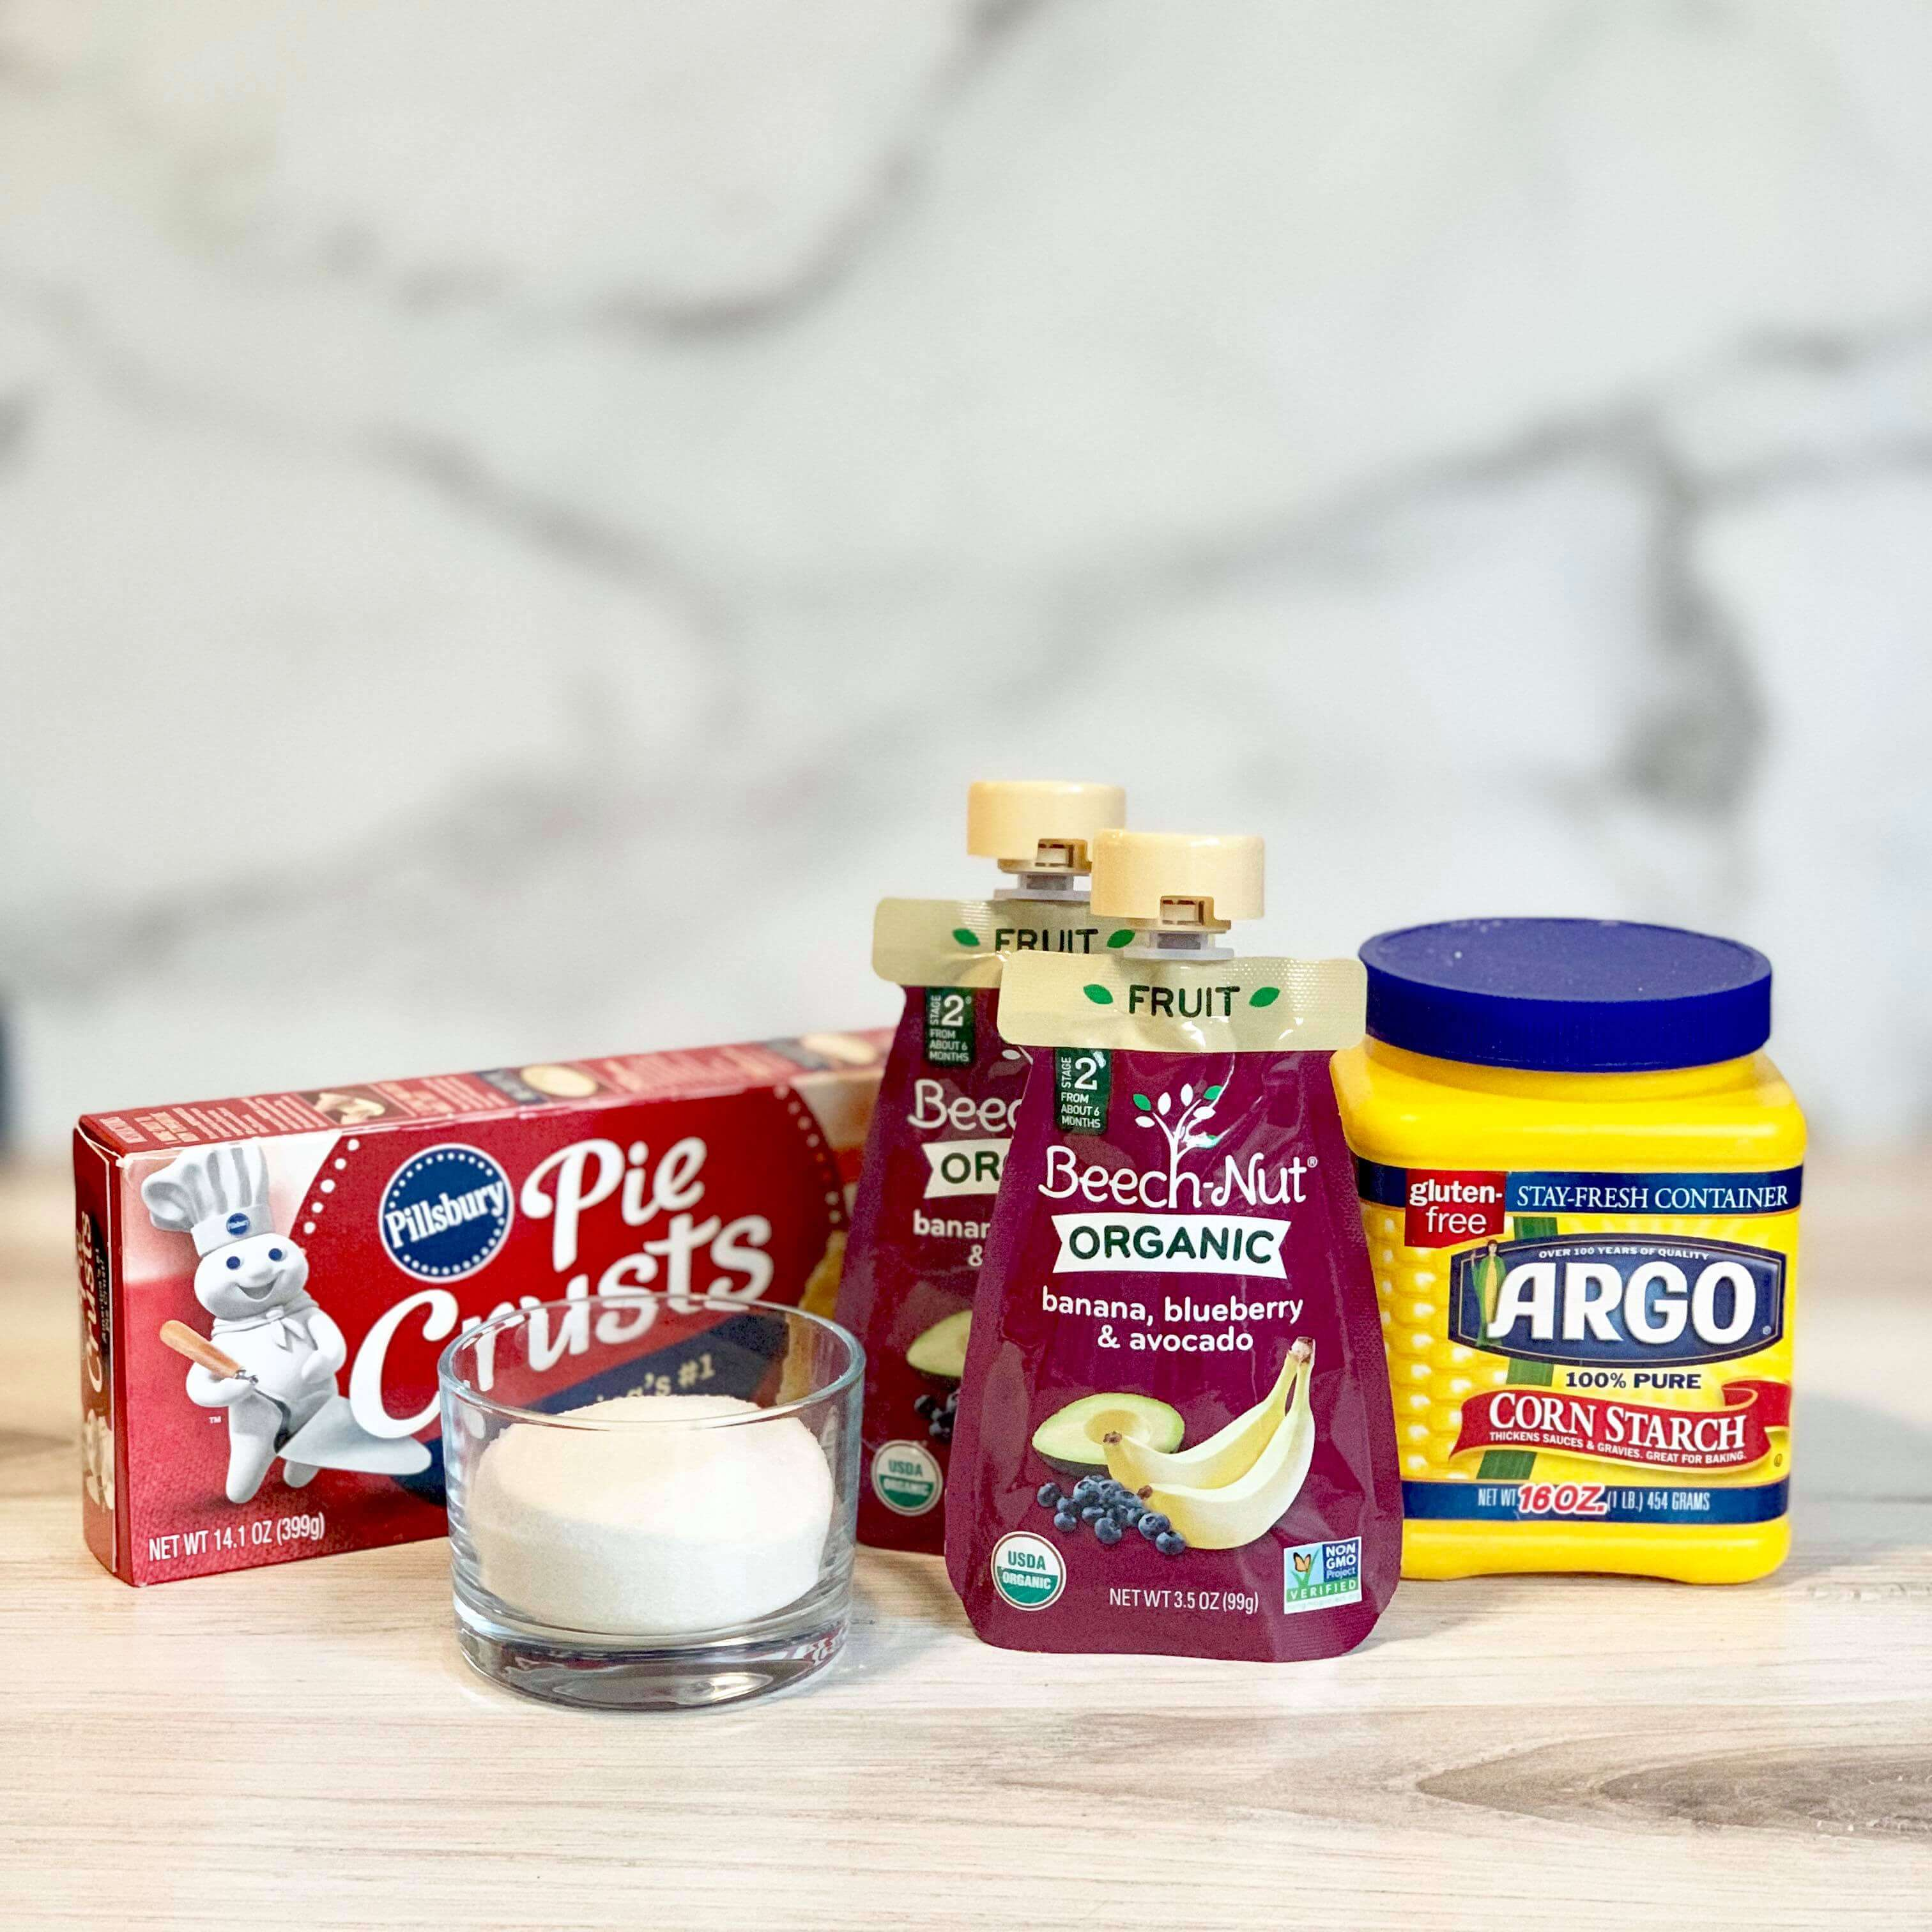 Boo-Berry Pop-Tarts ingredients